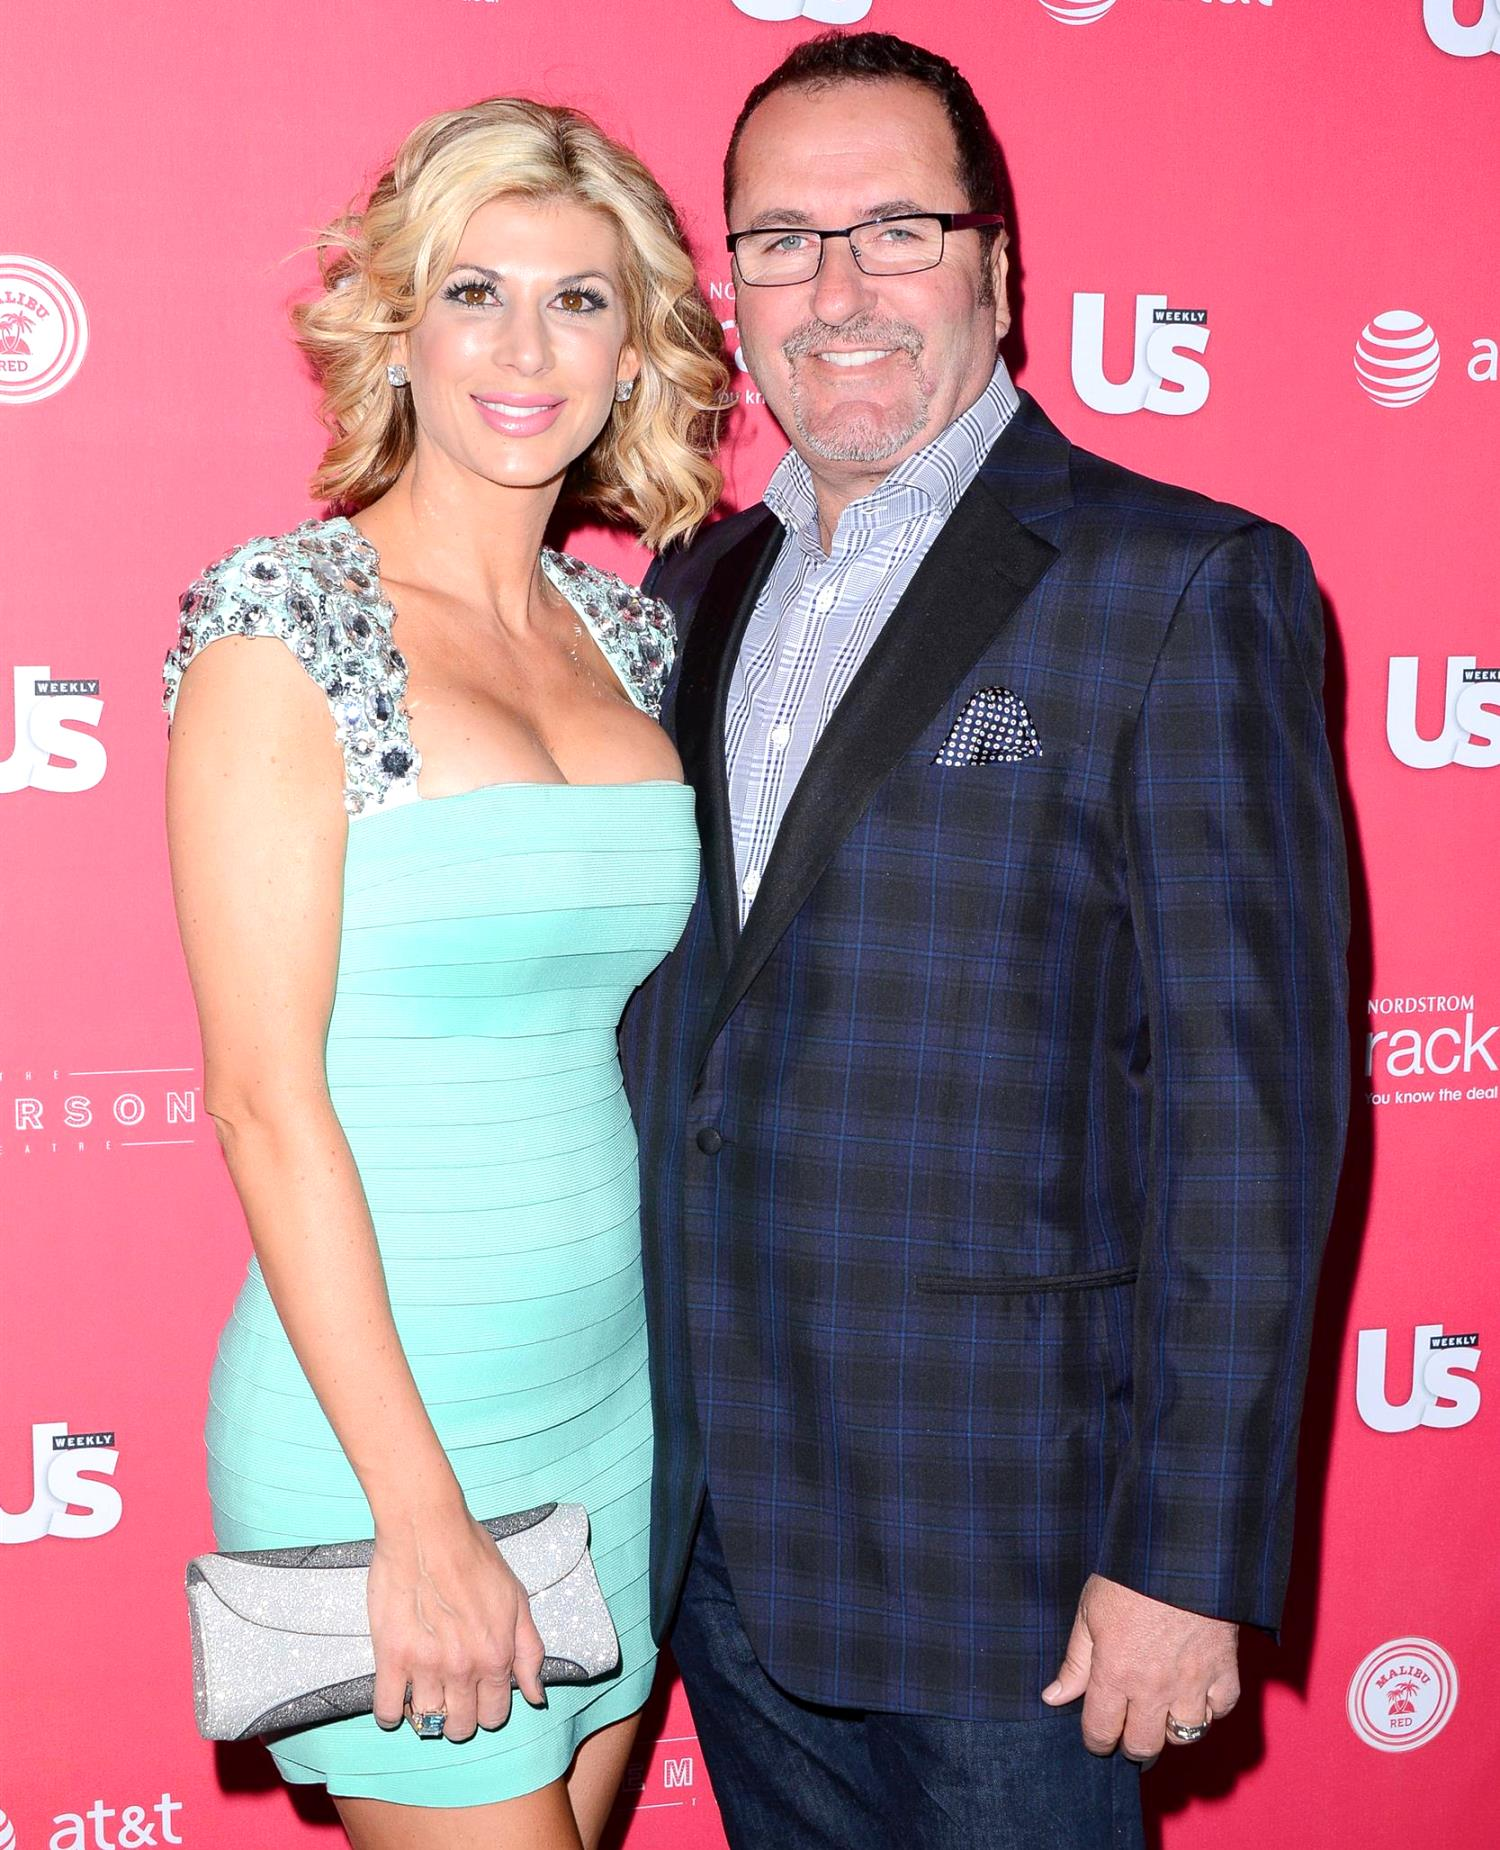 Alexis Bellino Is Getting Divorced After 13 Years of Marriage